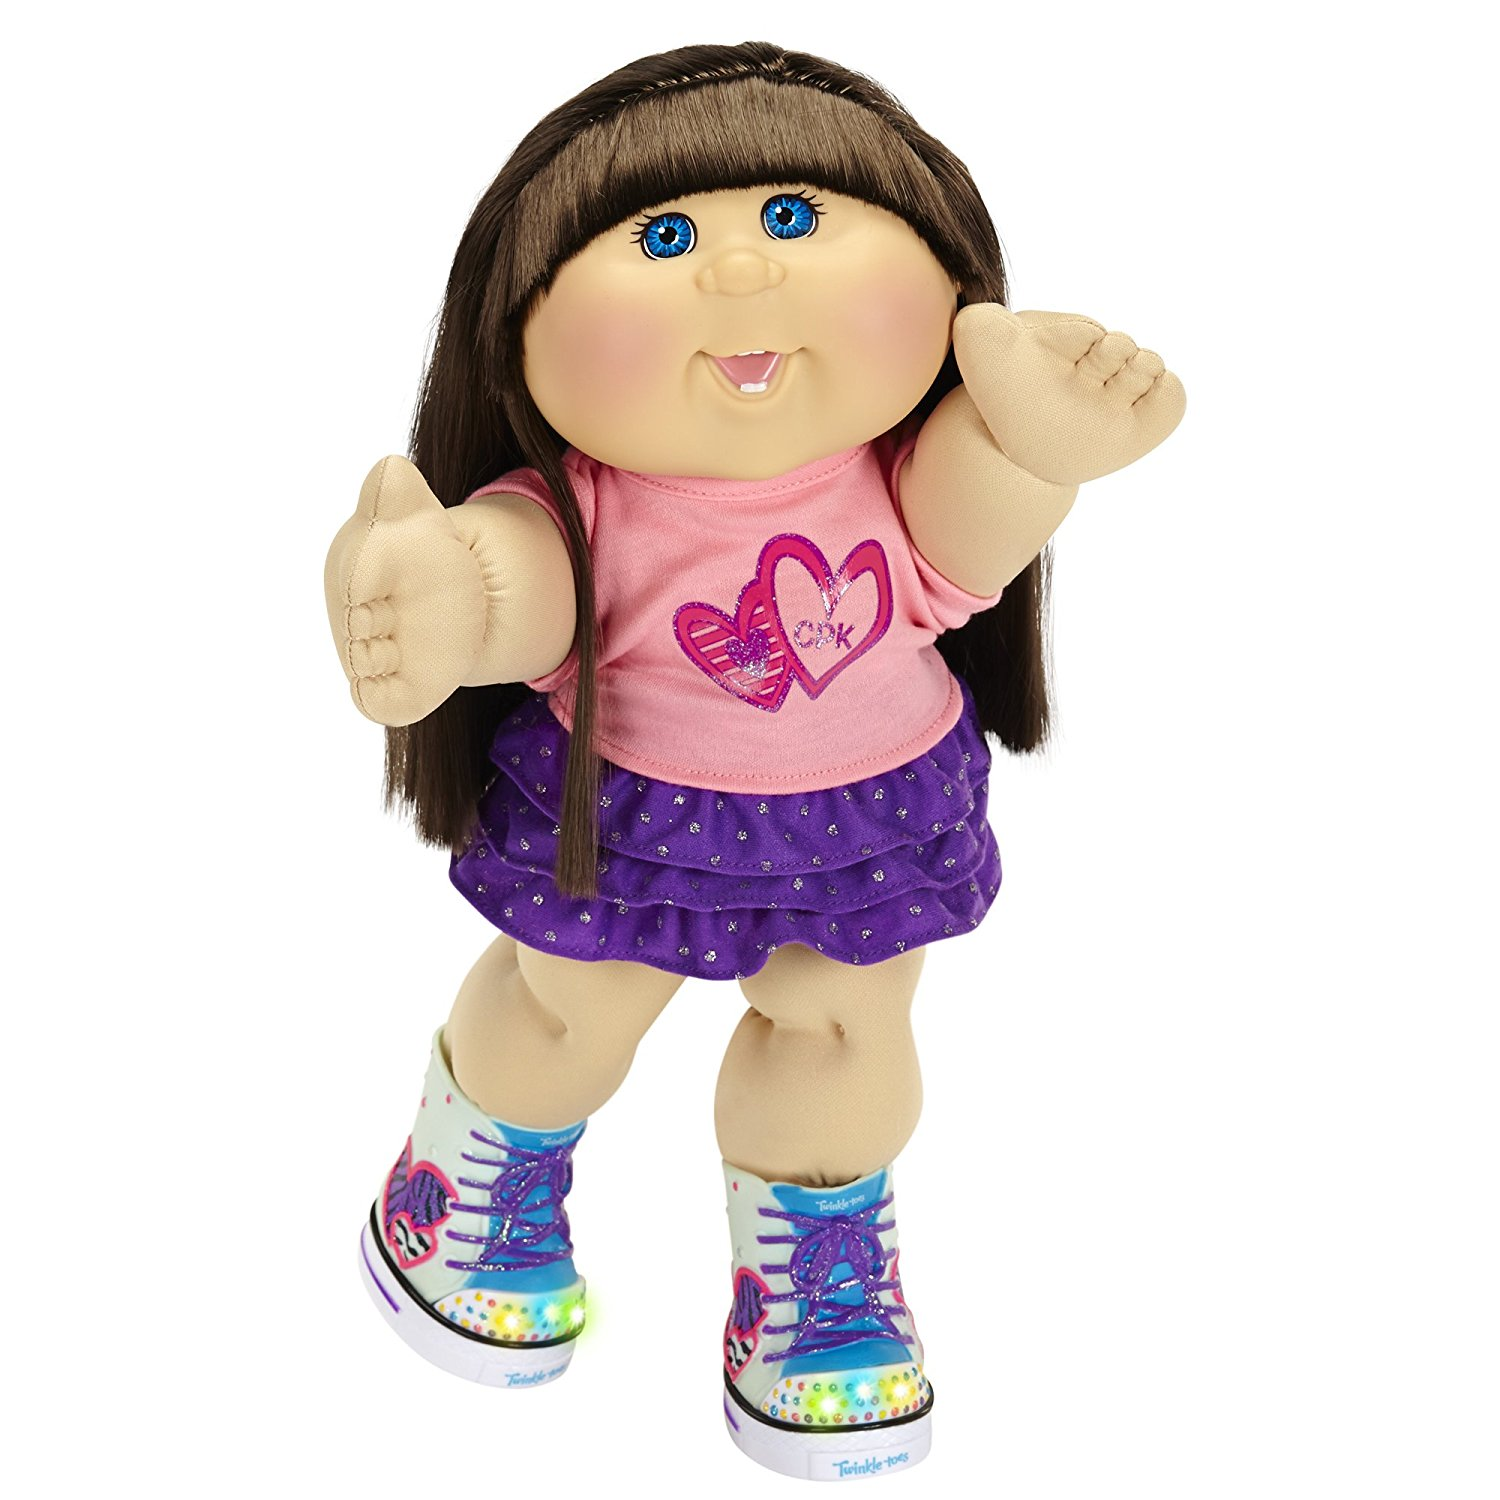 Cabbage Patch Kids Twinkle Toes: Caucasian Girl Doll, Brunette, Blue Eyes